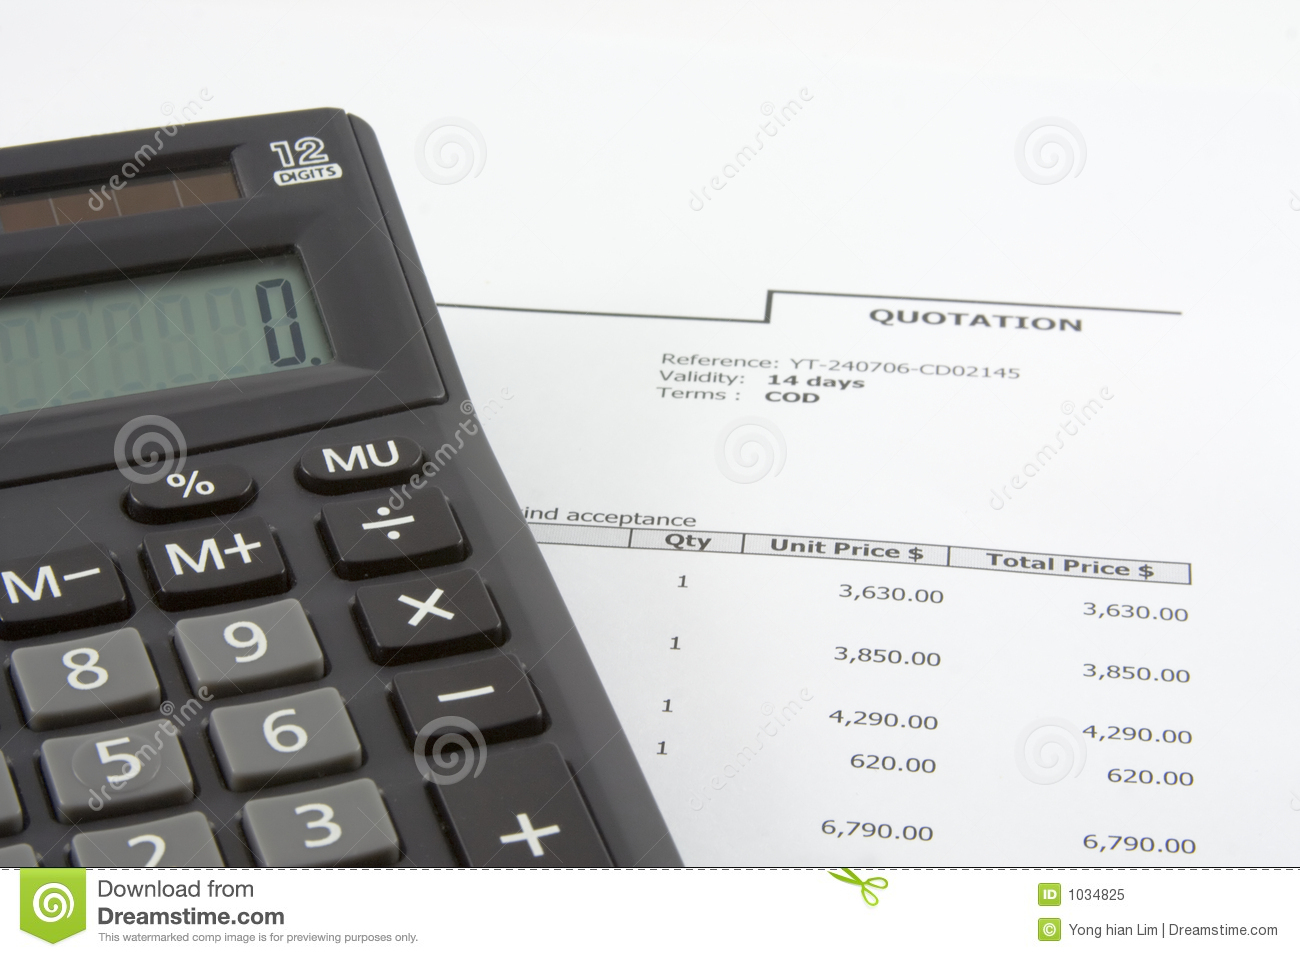 sales quotation and calculator stock image image of sales